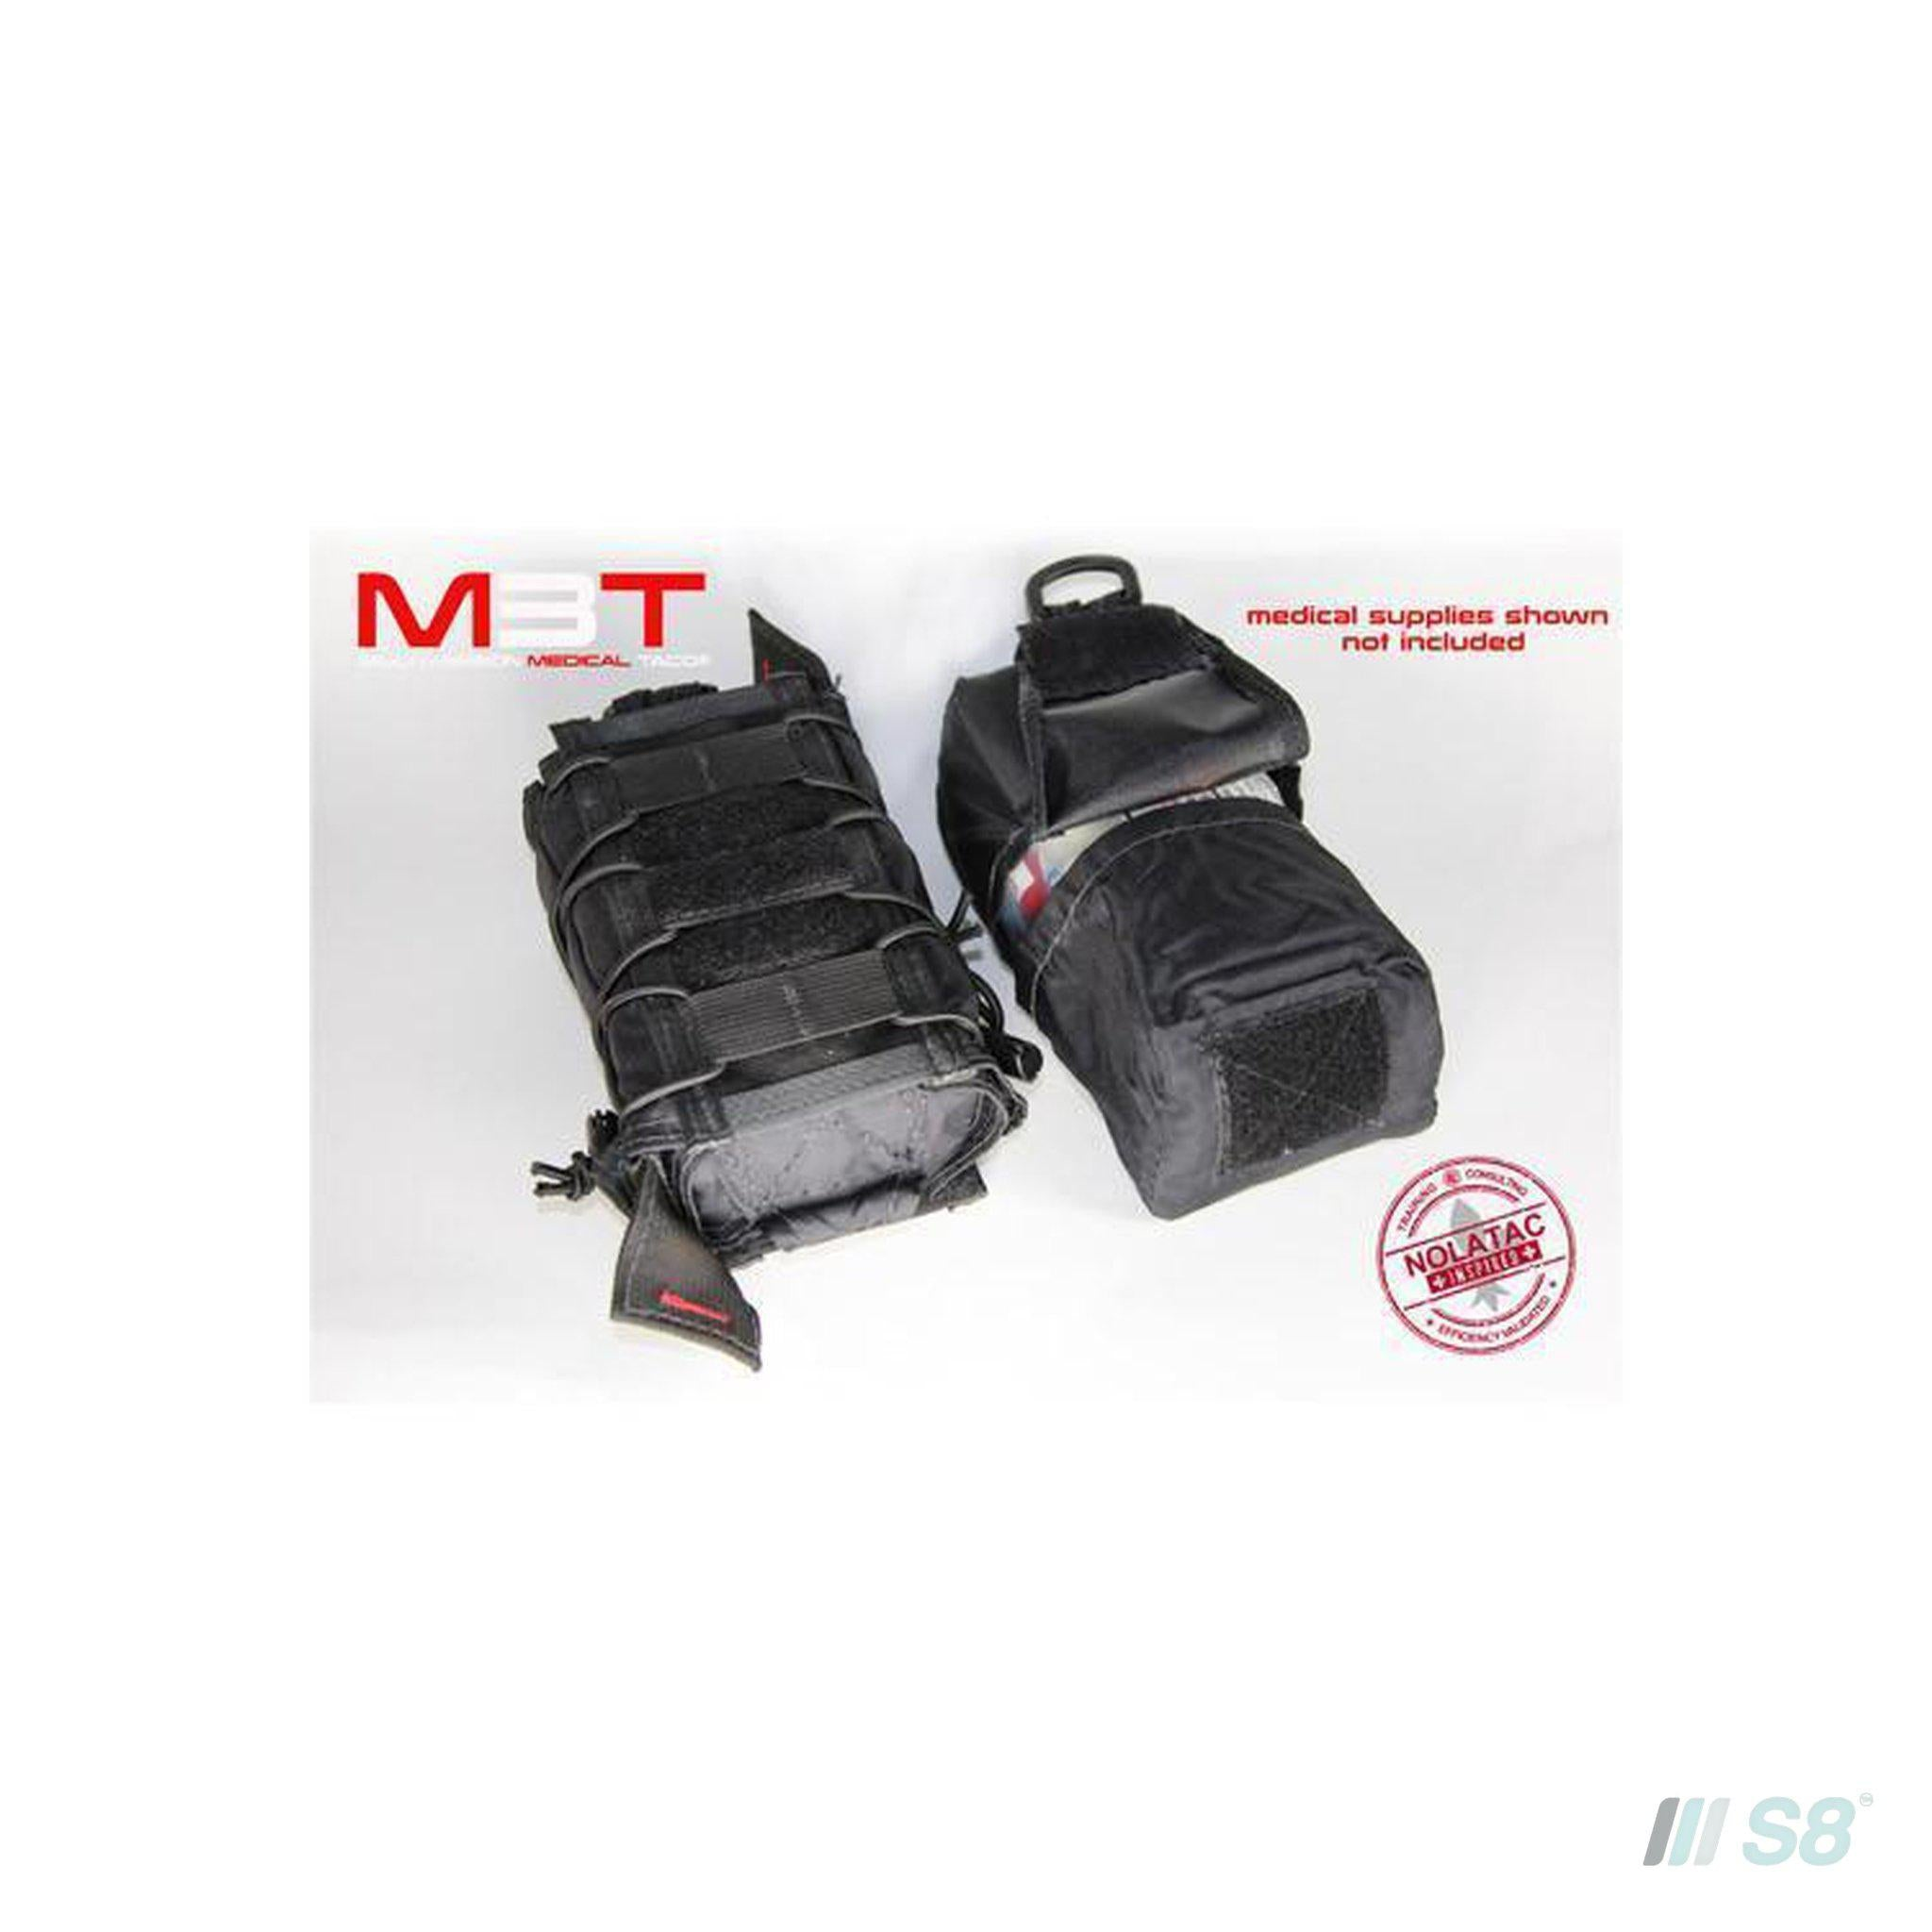 HSGI -Nolatec M3T Multi-Mission Medical Taco-HSGI-S8 Products Group